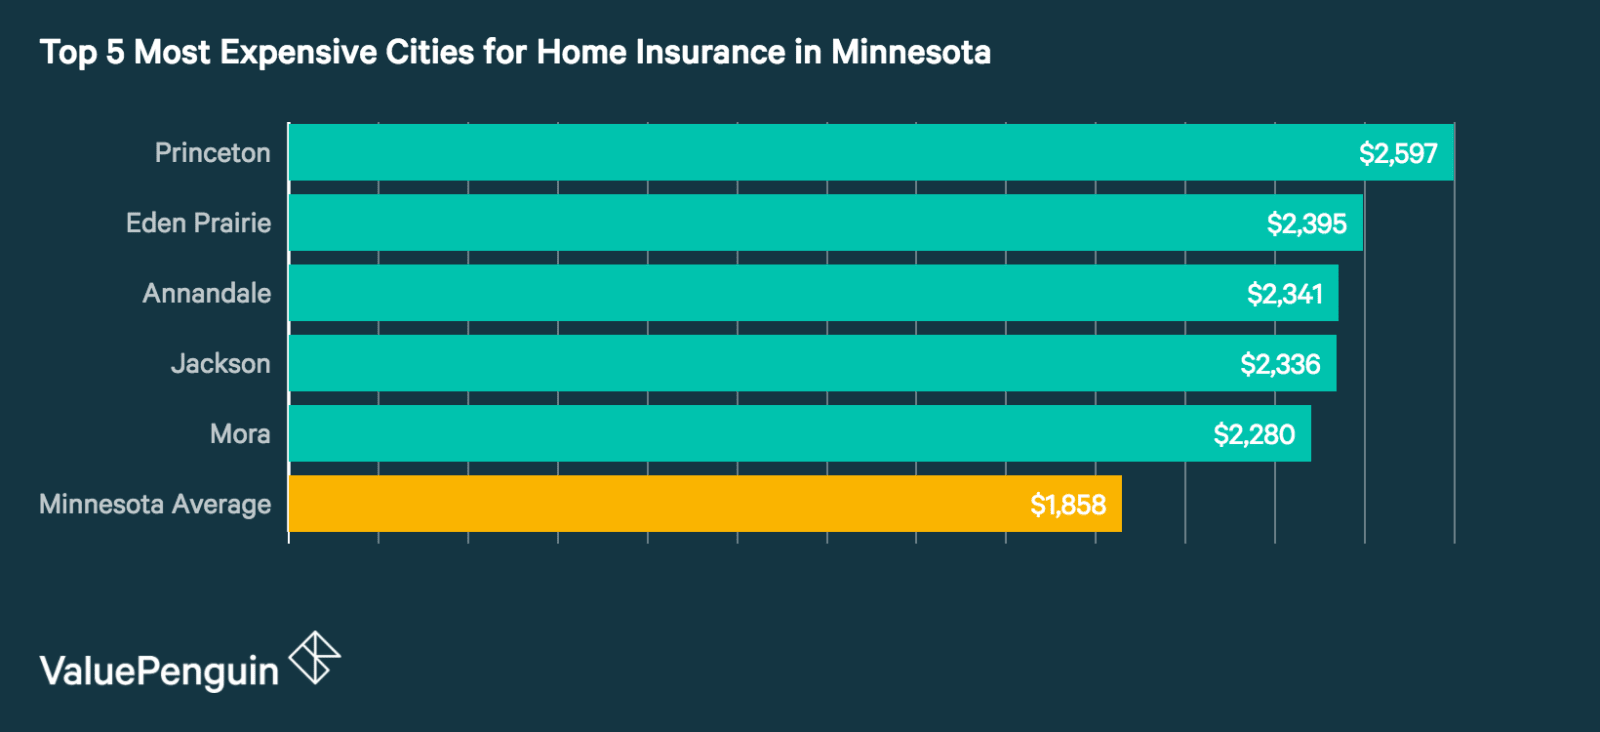 Top 5 Most Expensive Cities in Minnesota for Homeowners Insurance